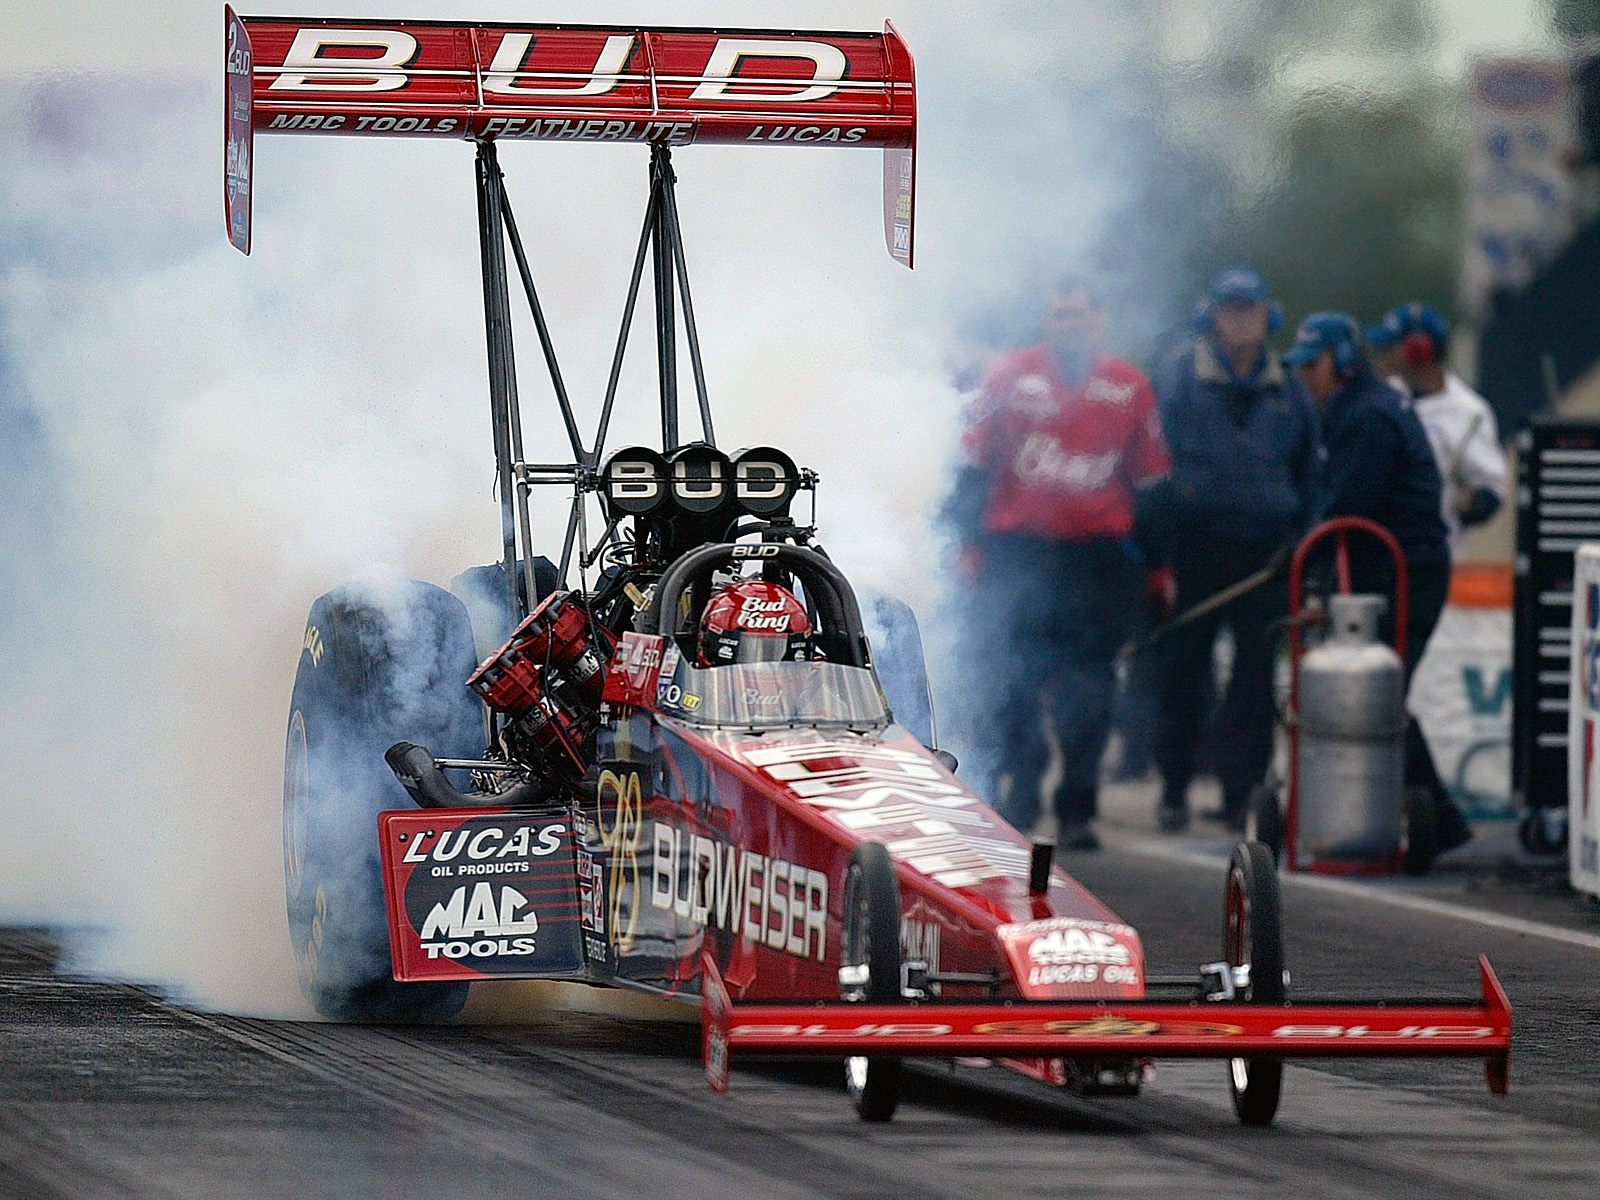 Most top fuel dragsters have the engine placed in the rear, although some, called slingshot dragsters, have the engine in front of the driver.